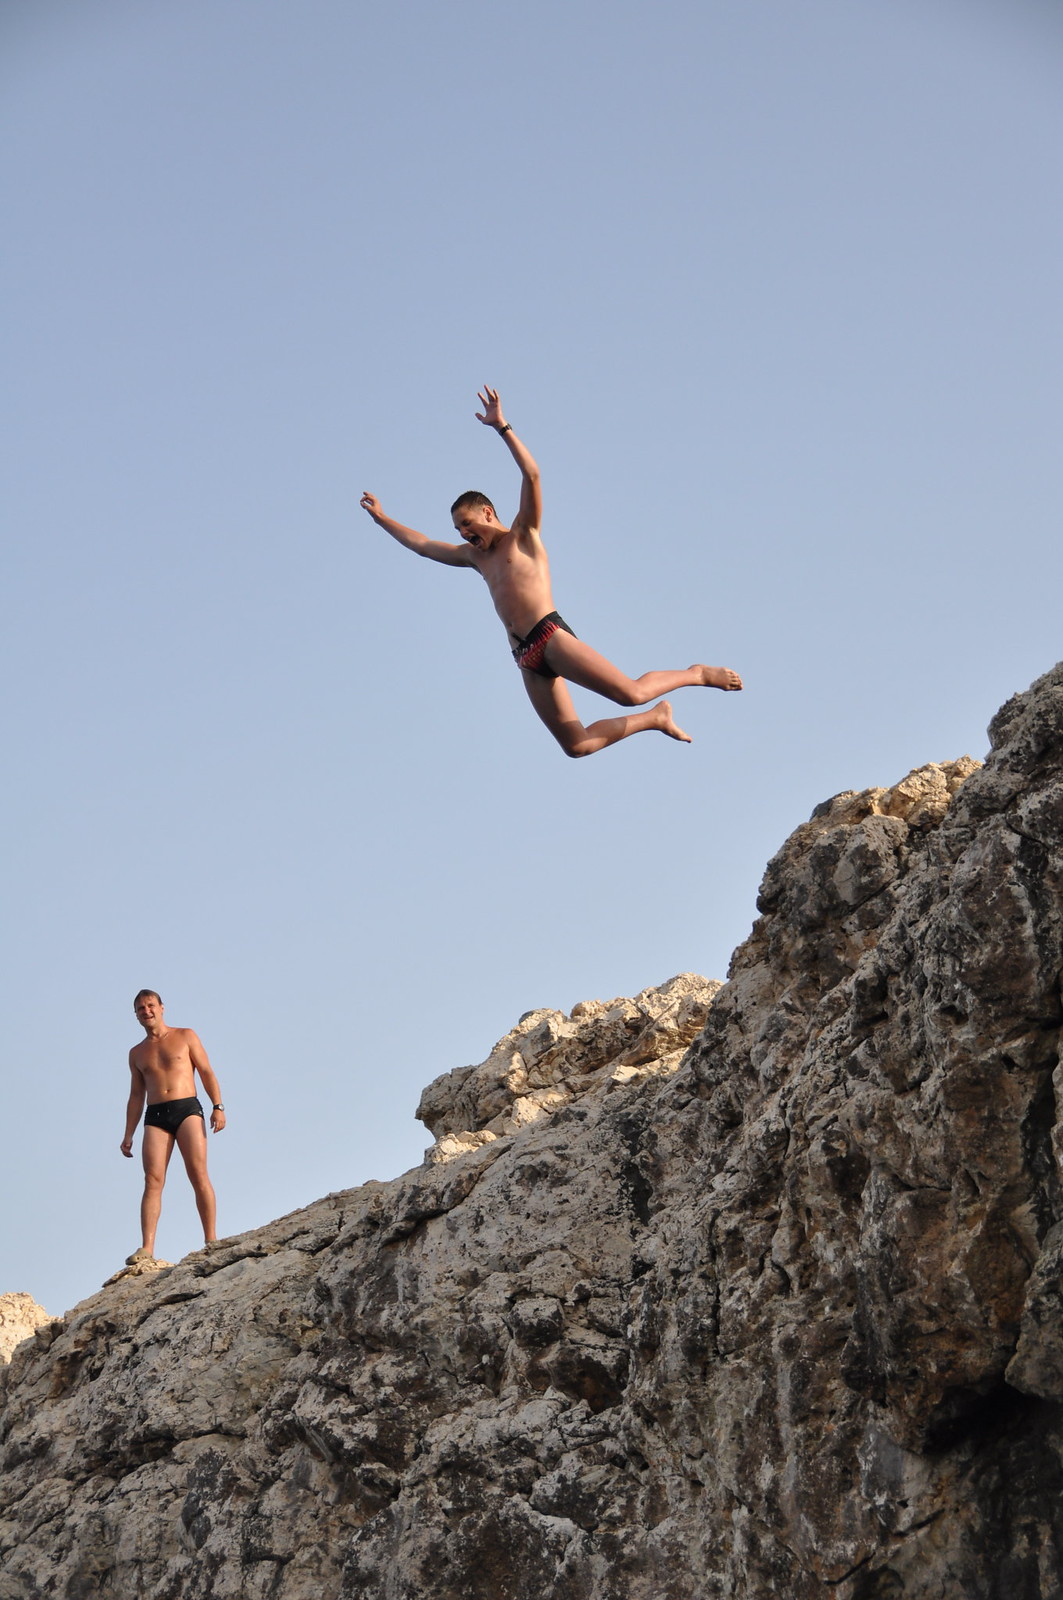 Jumping off the cliff at Cape Greco